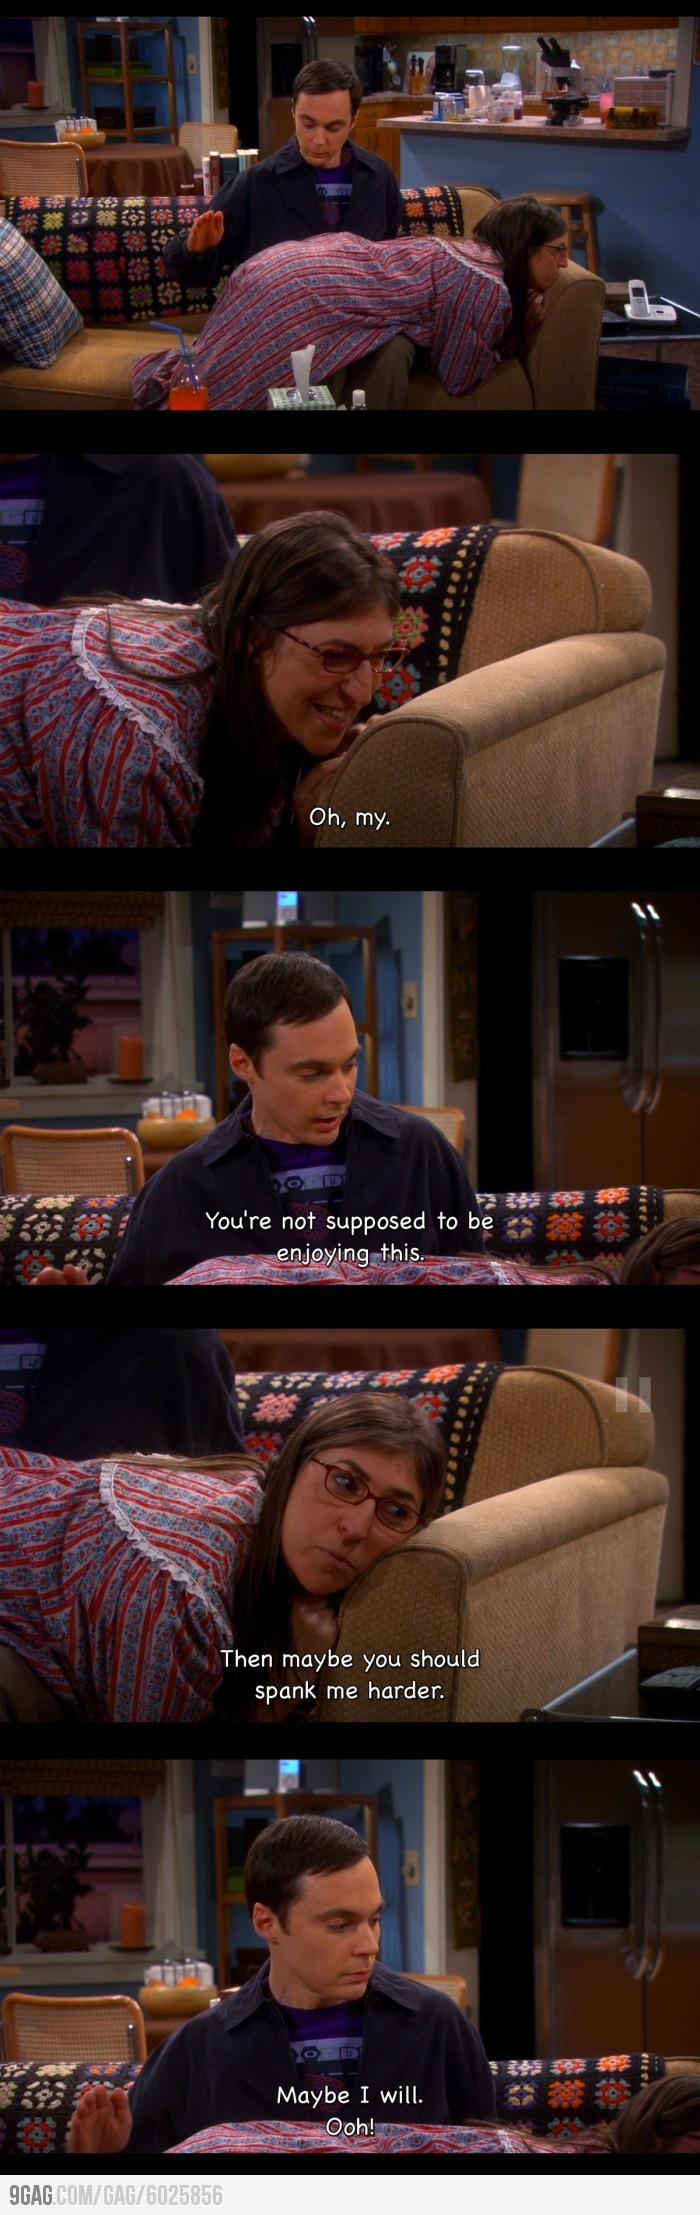 I saw this the other night! Hilarious! I live Sheldon & Amy farrowfowler!